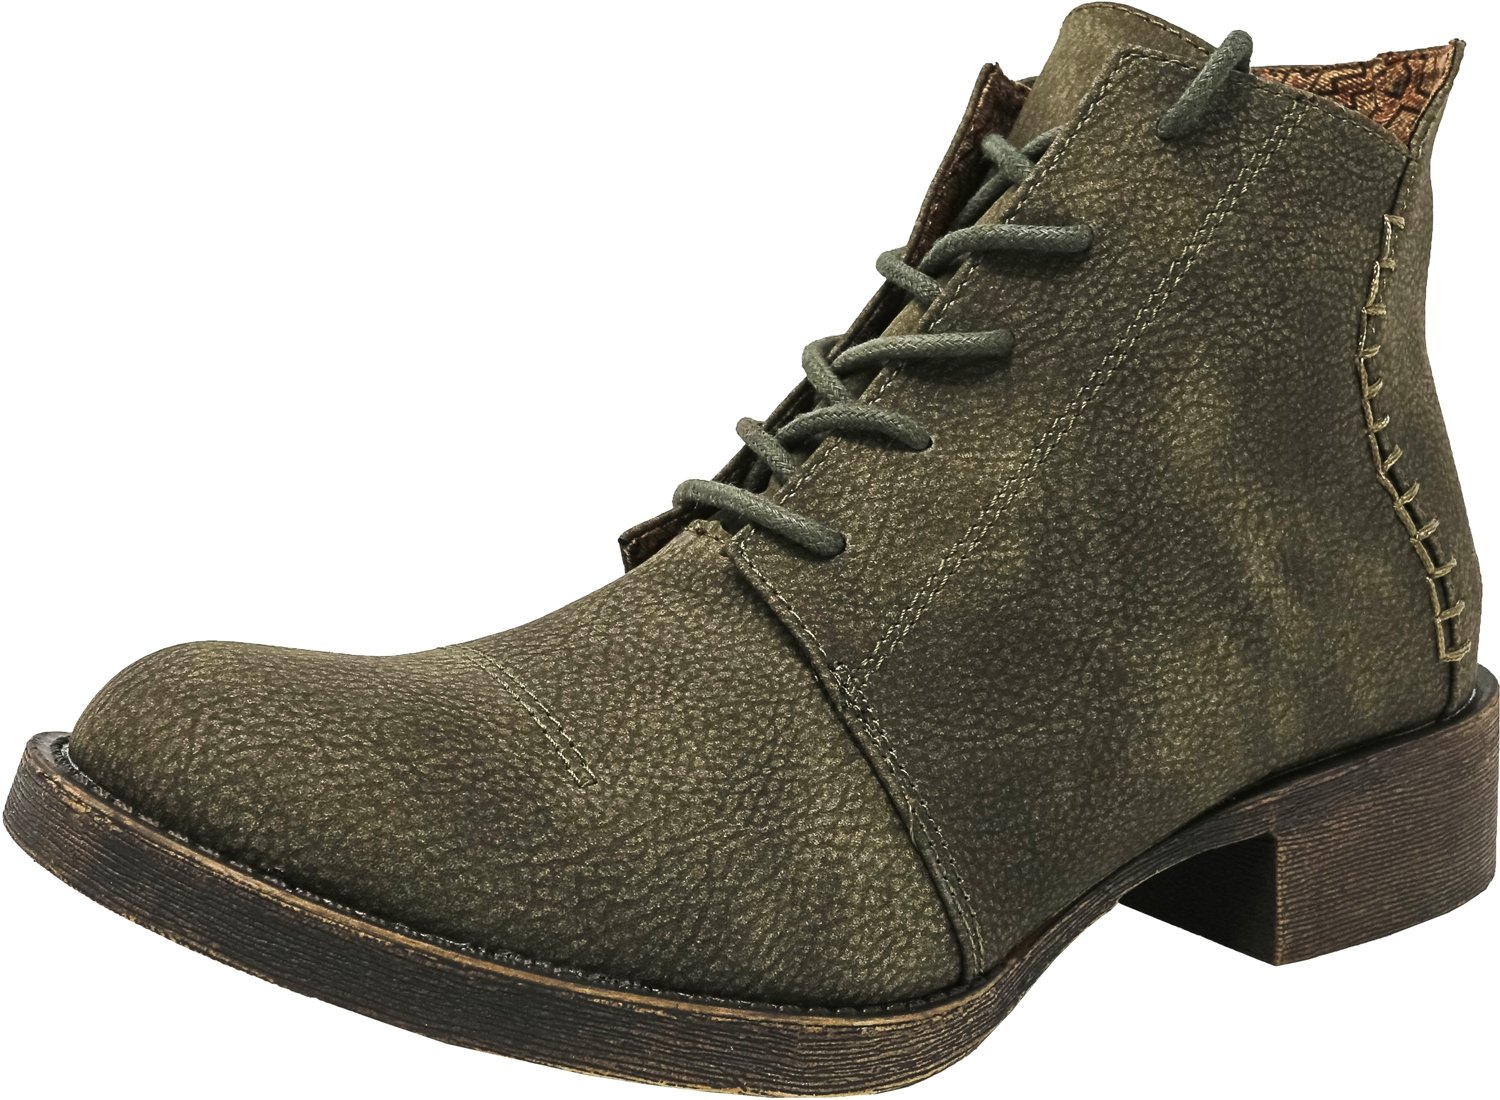 Blowfish Women's Kinder Boot, Olive Saddle Rock PU, 7.5 M US